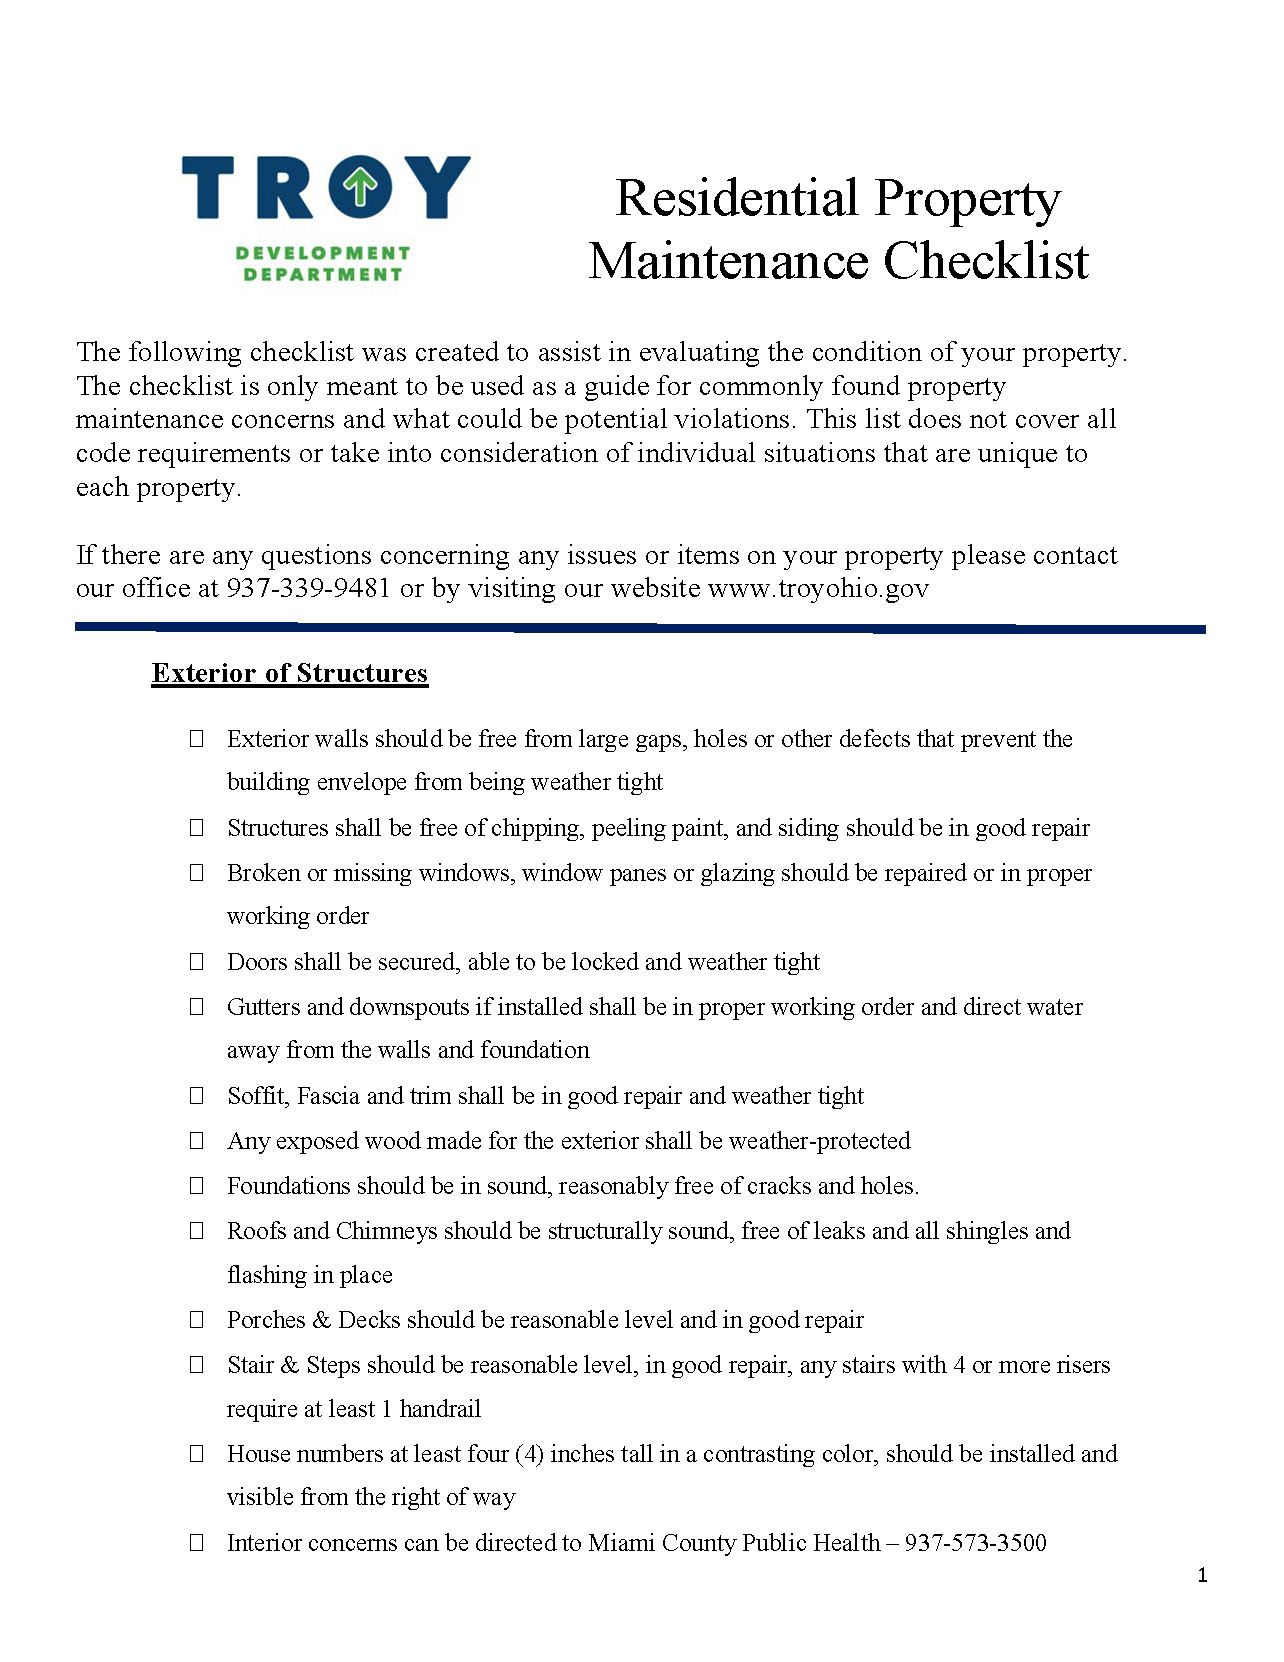 City of Troy Property Maintenance Checklist_202006051501176654 (1)_Page_1